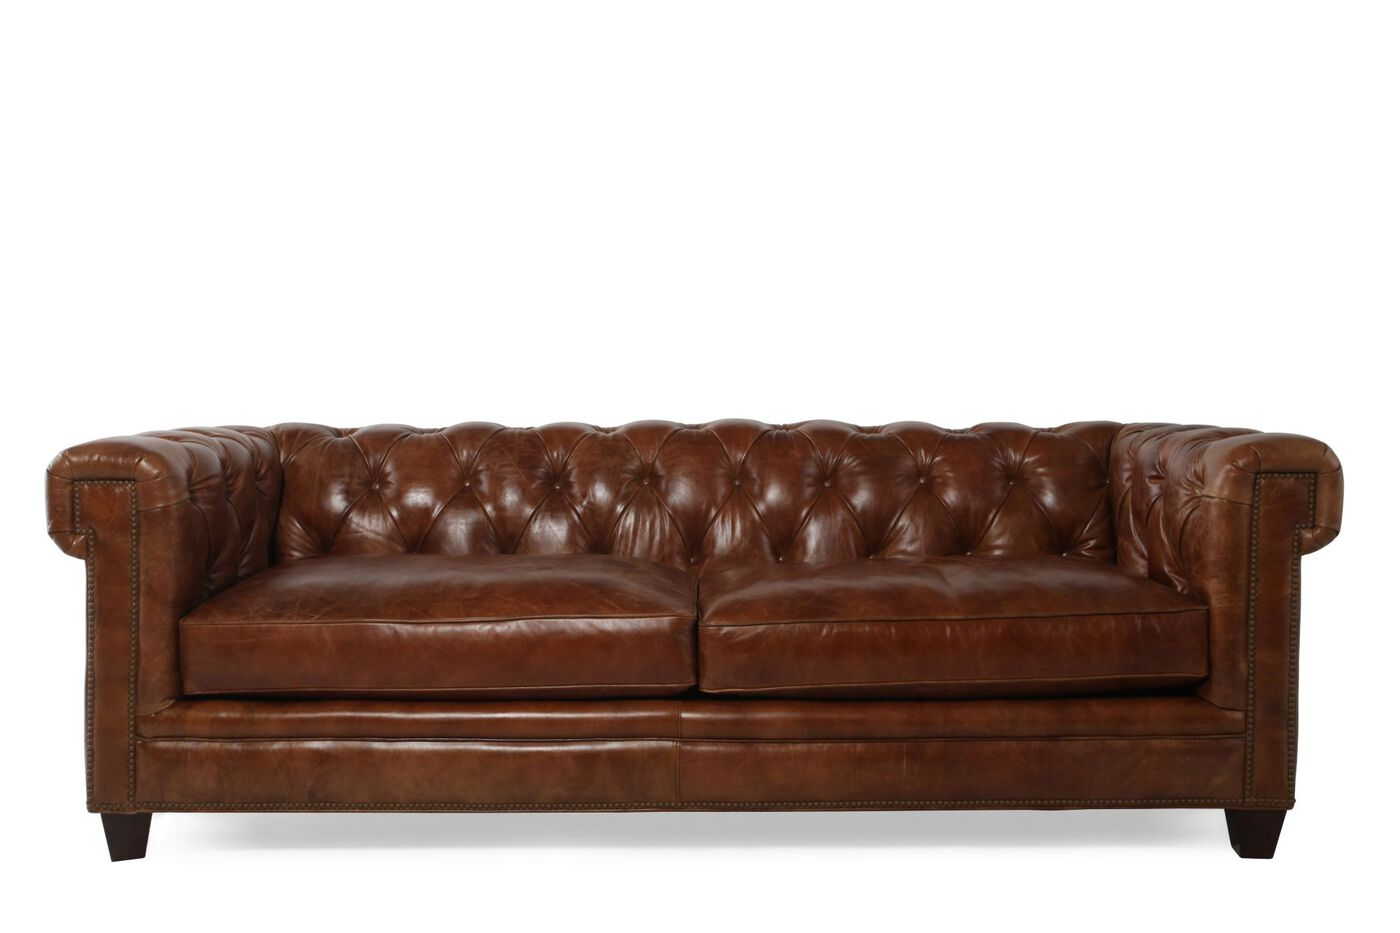 Hooker Stationary Leather Sofa